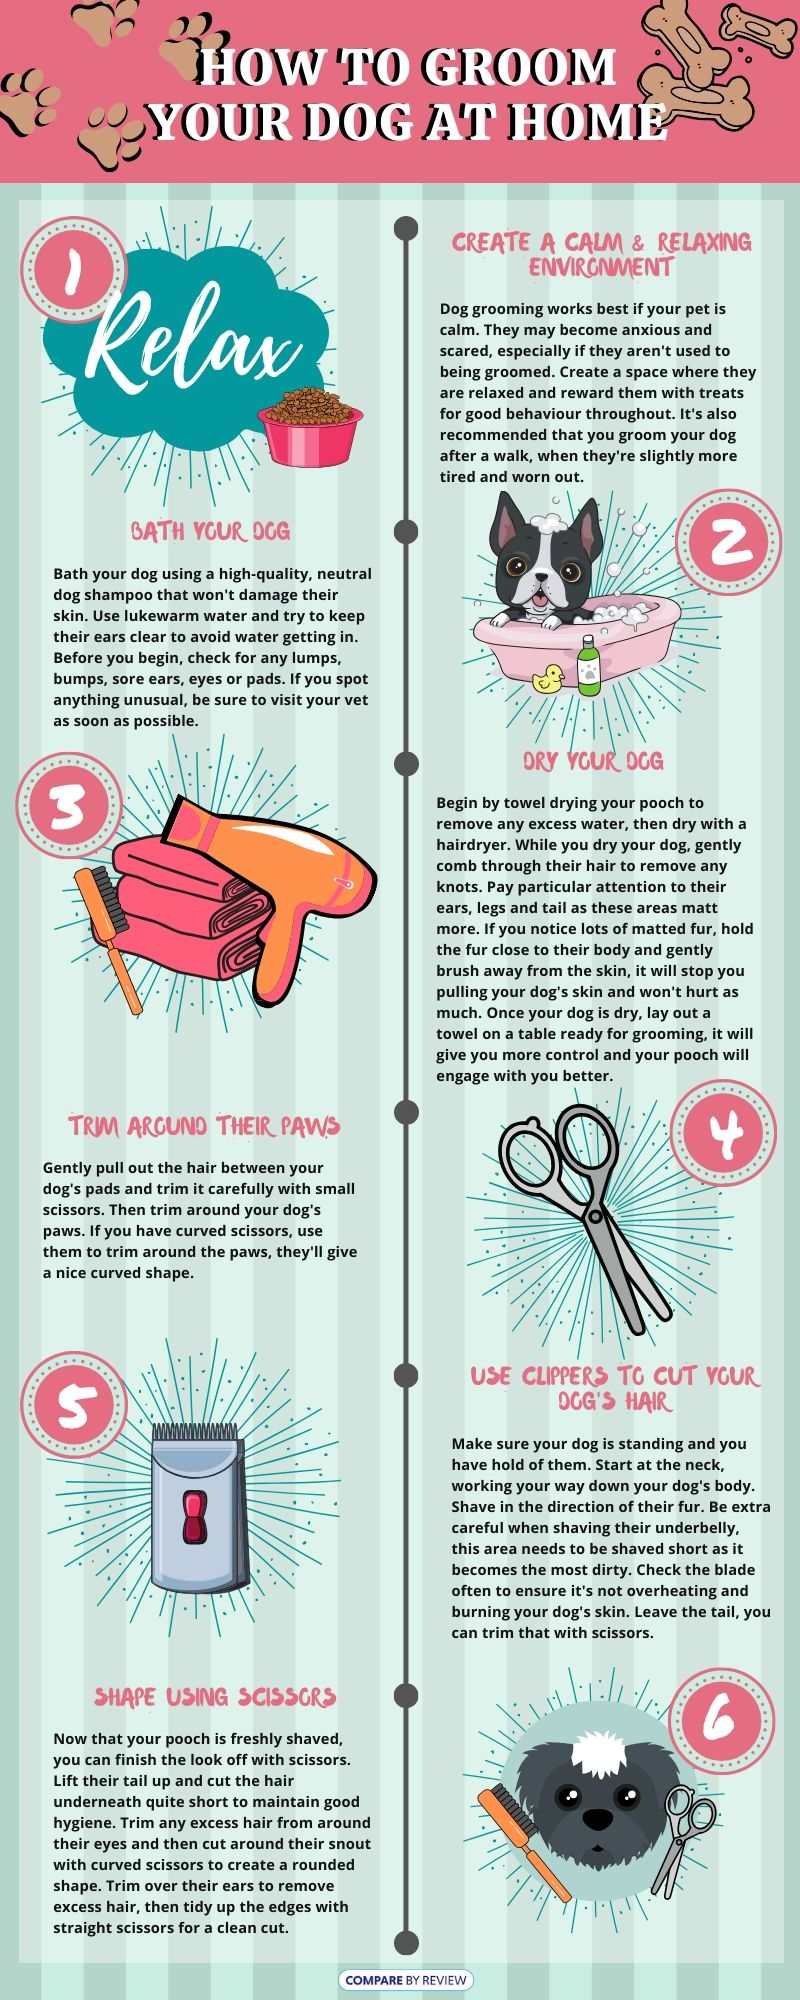 How to Groom Your Dog Infographic